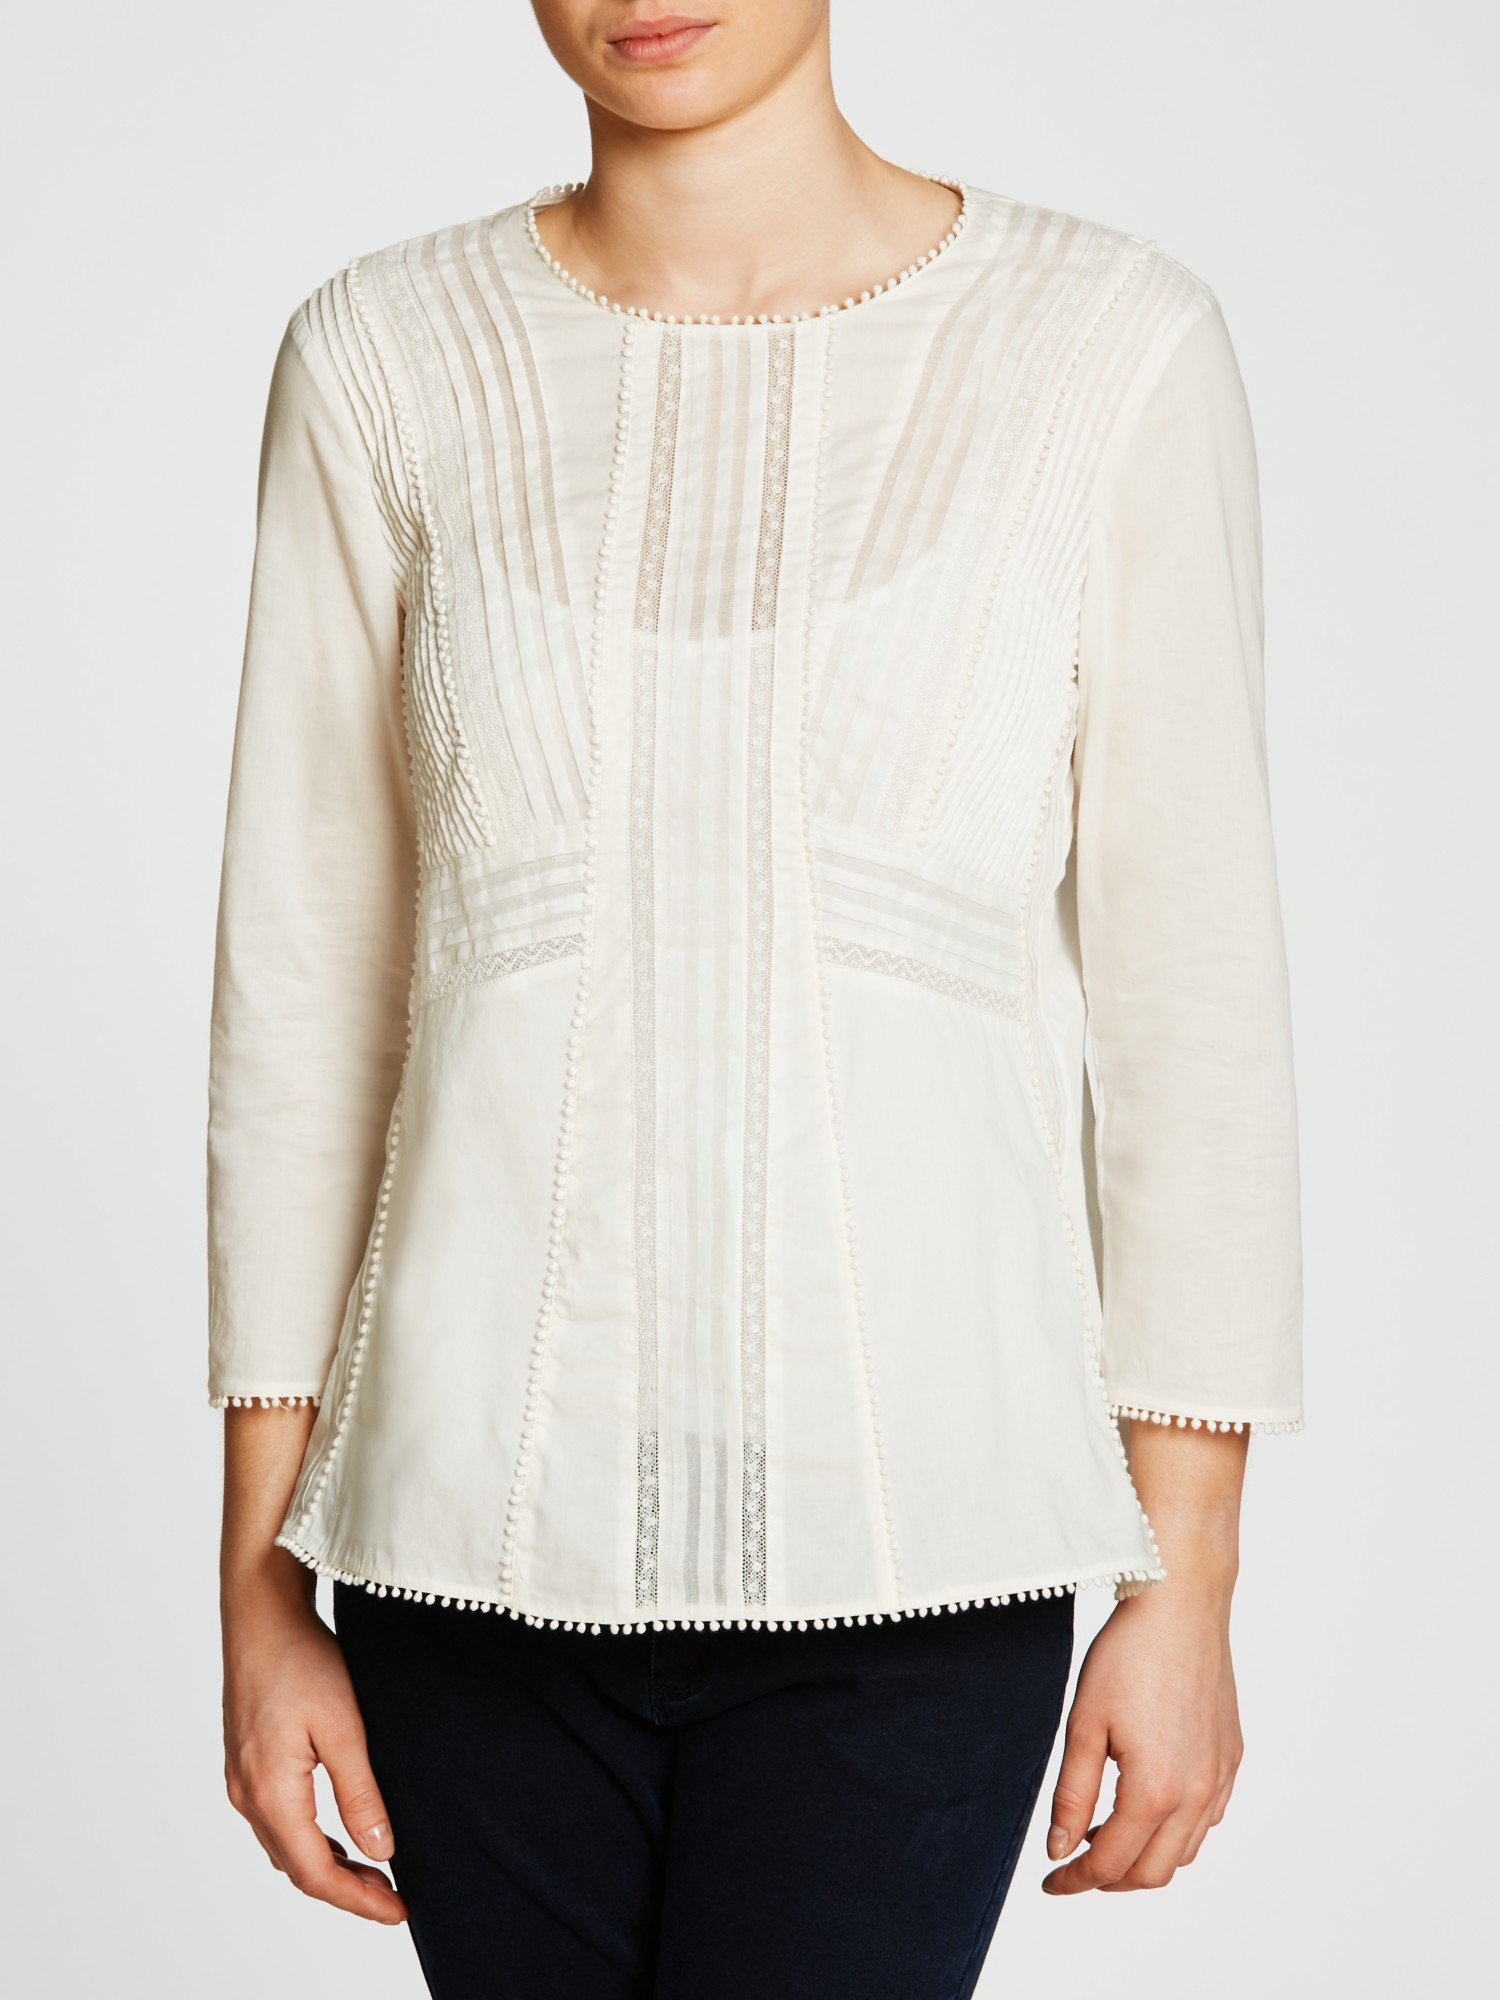 Weekend by Maxmara Cotton Panarea Embroidered Blouse in White